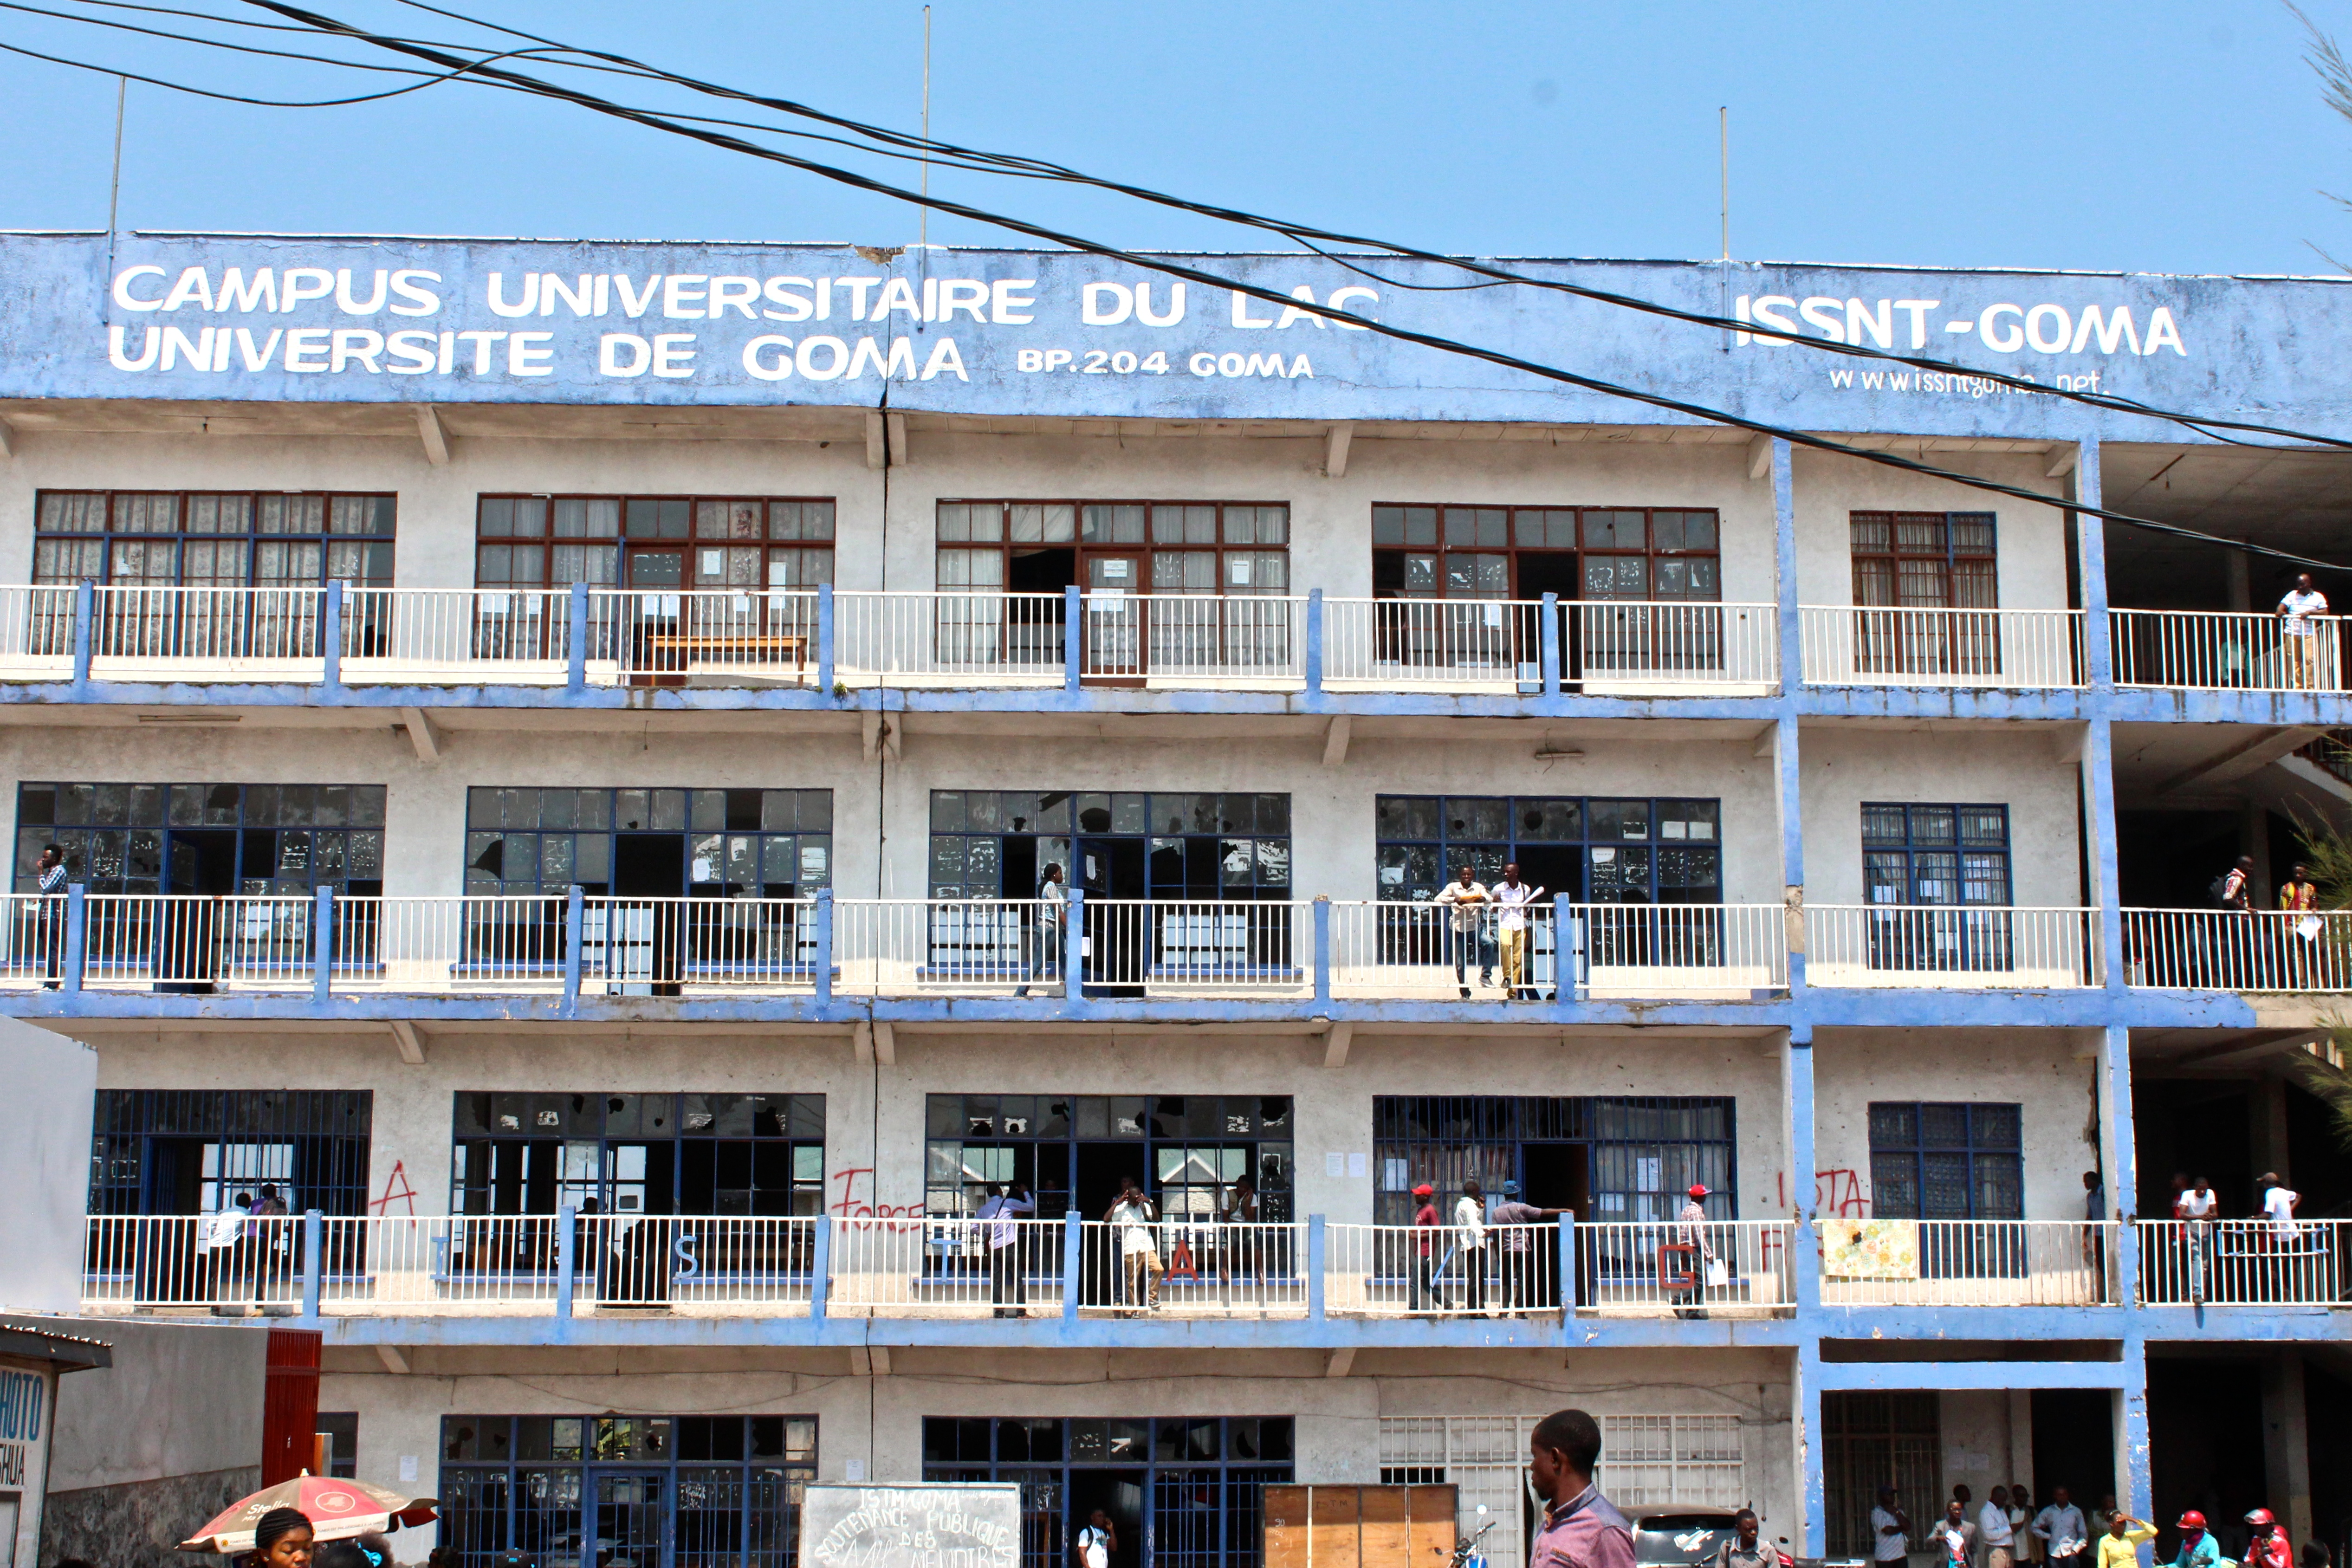 University of Goma, one of the country's top universities. Police smashed windows in response to anti-government protests.